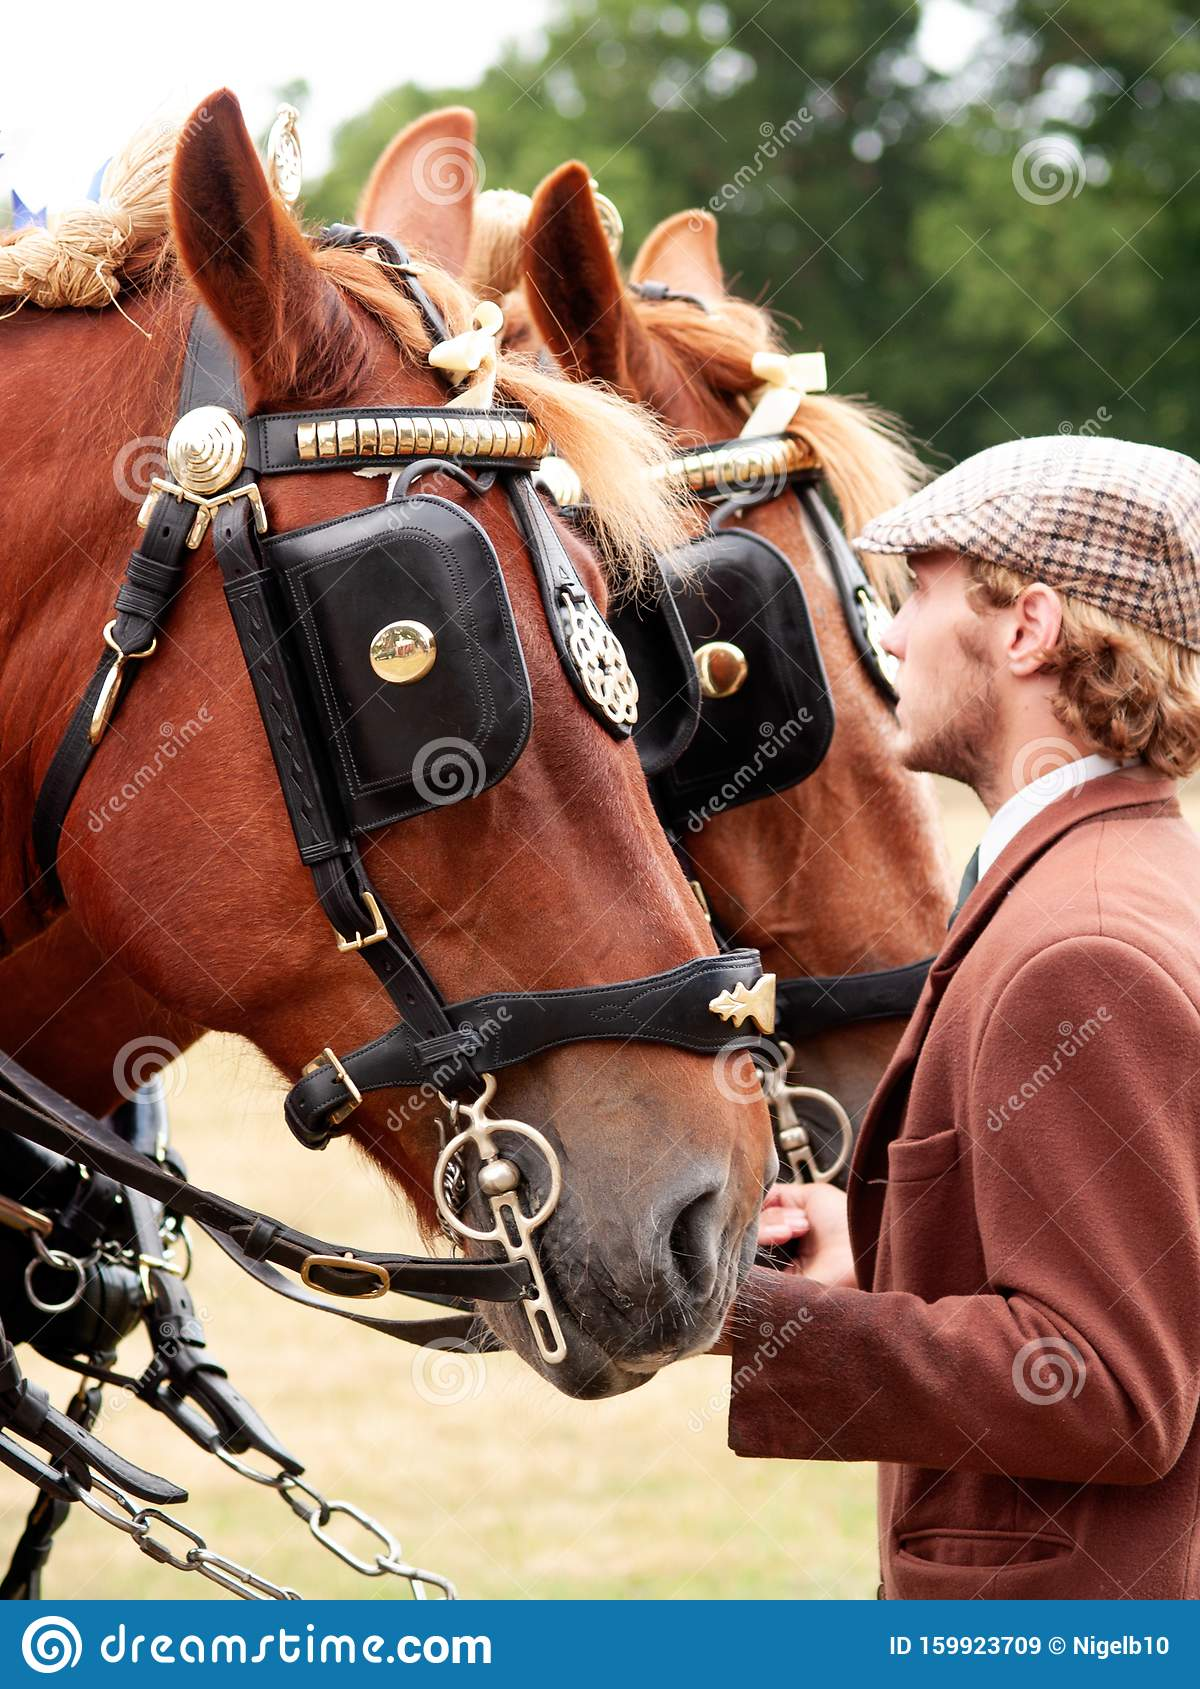 Suffolk Horse In Harness Editorial Stock Image  Image Of